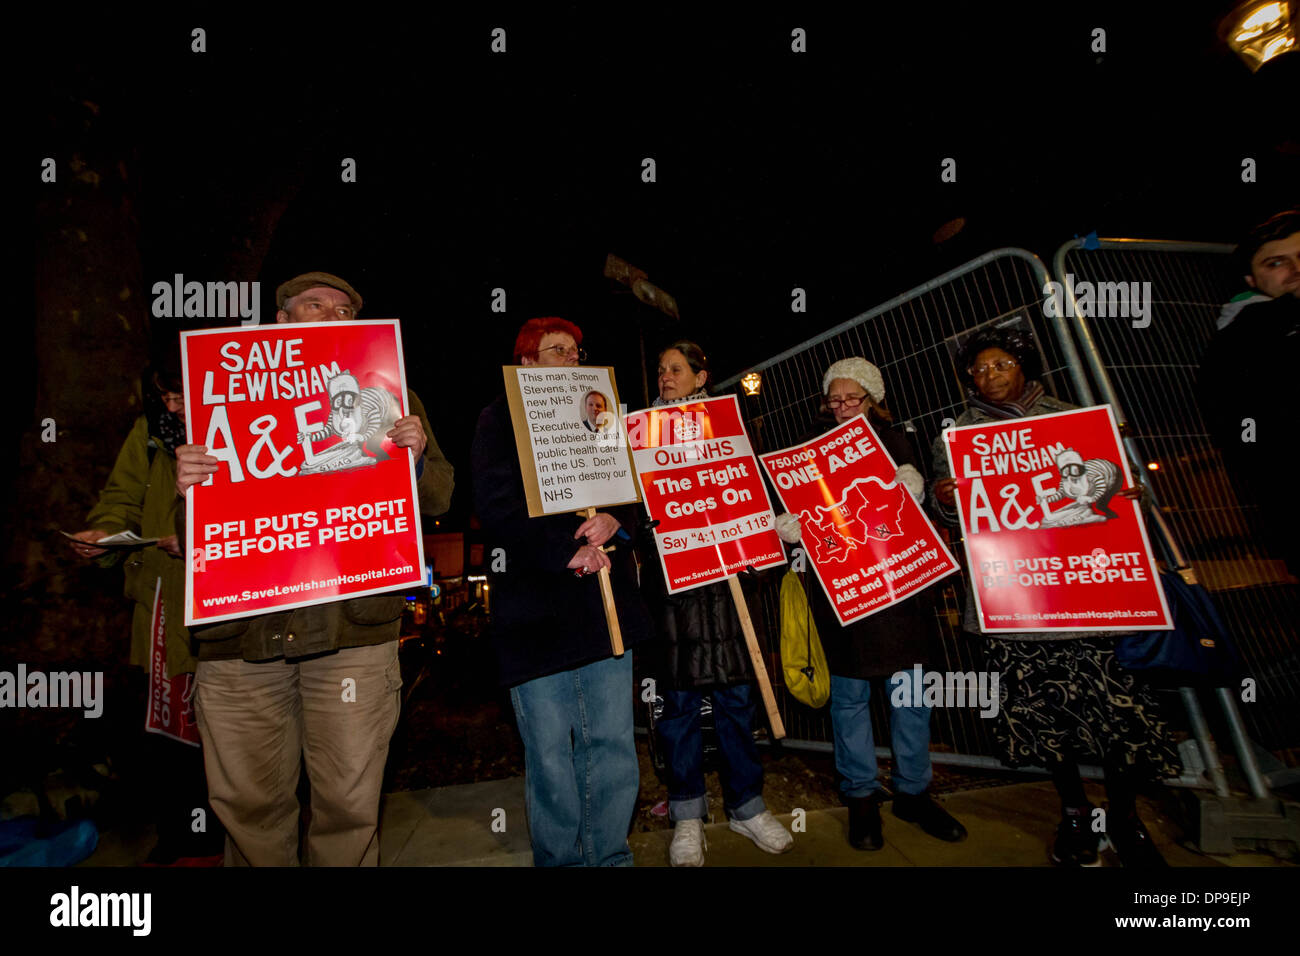 NHS Protest outside BBC TV Question Time in Lewisham, London, UK. - Stock Image